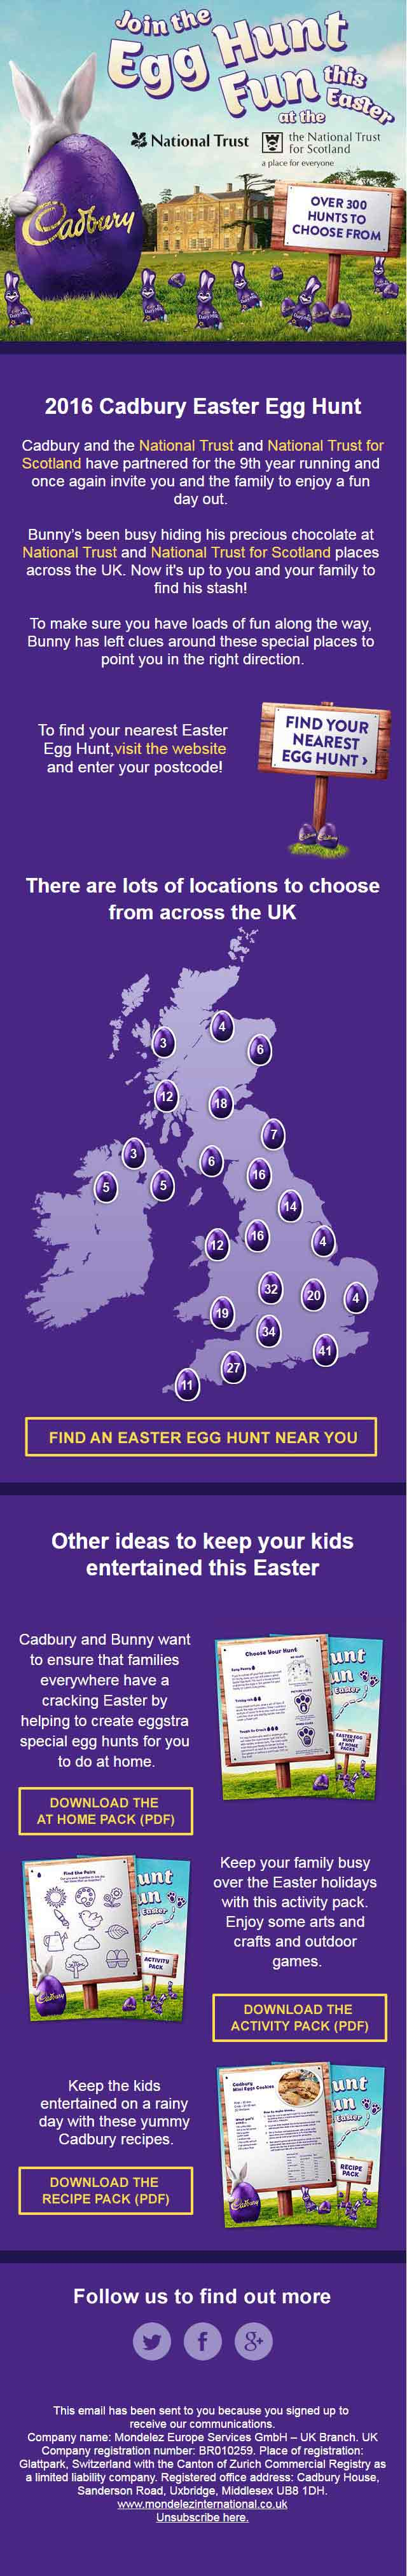 Join-the-Cadbury-Egg-hunt-fun-this-Easter